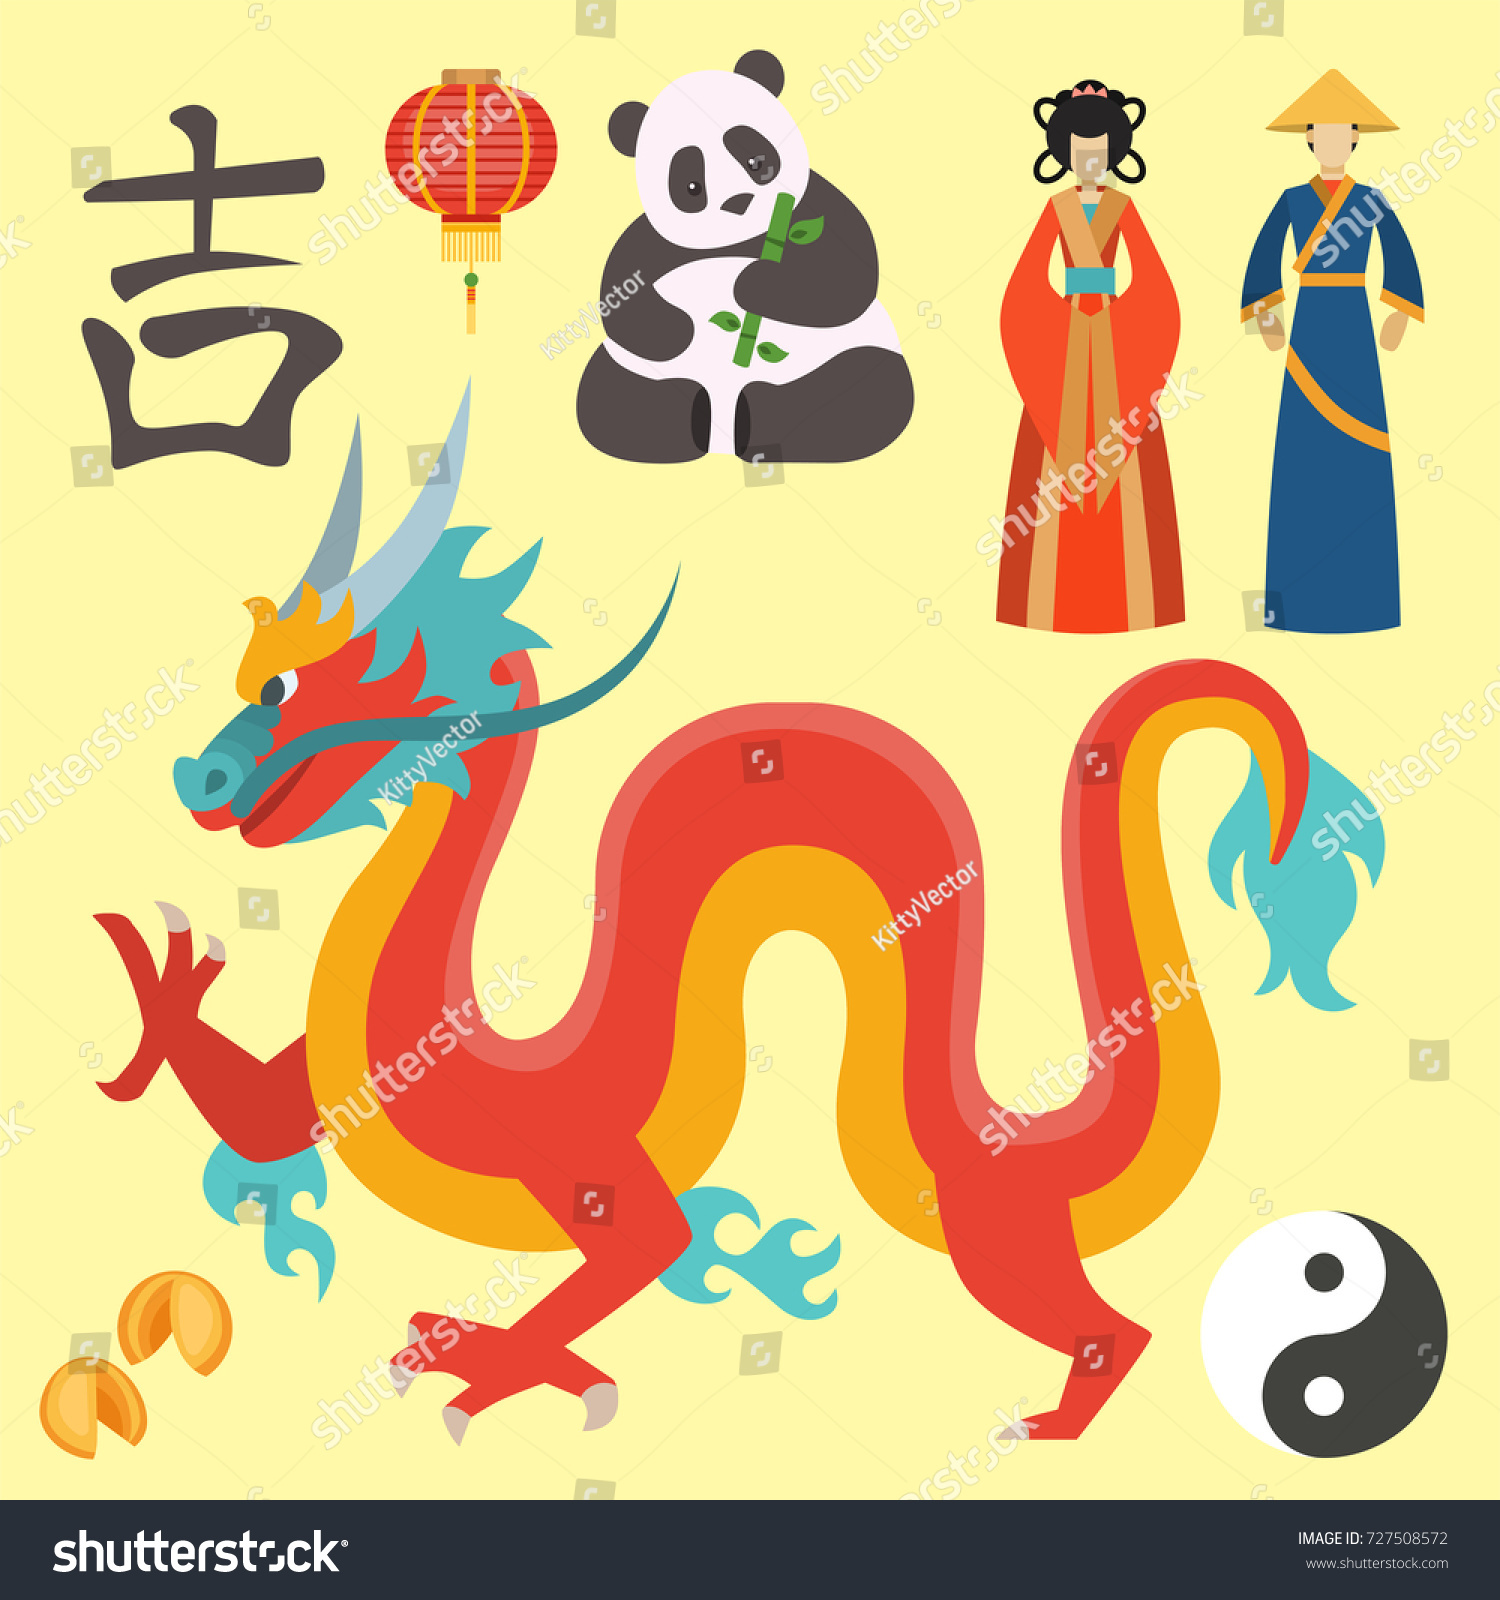 China icons peace text oriental culture stock vector 727508572 china icons peace text oriental culture chinese traditional symbols vector illustration biocorpaavc Images